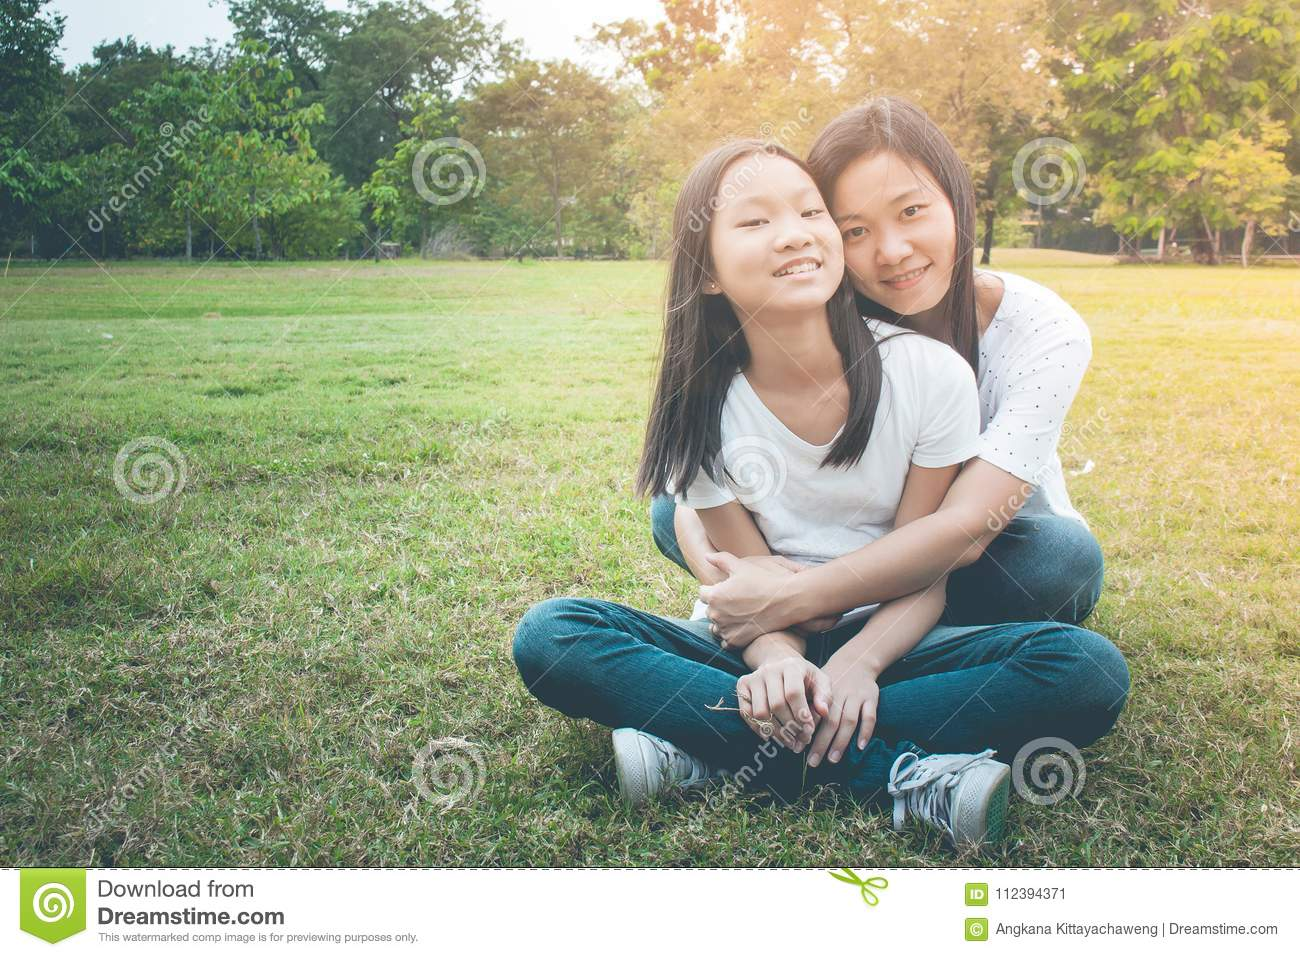 Adorable and Family Concept : Woman and child sitting relax on green grass. They hugging and feeling smiling happiness.